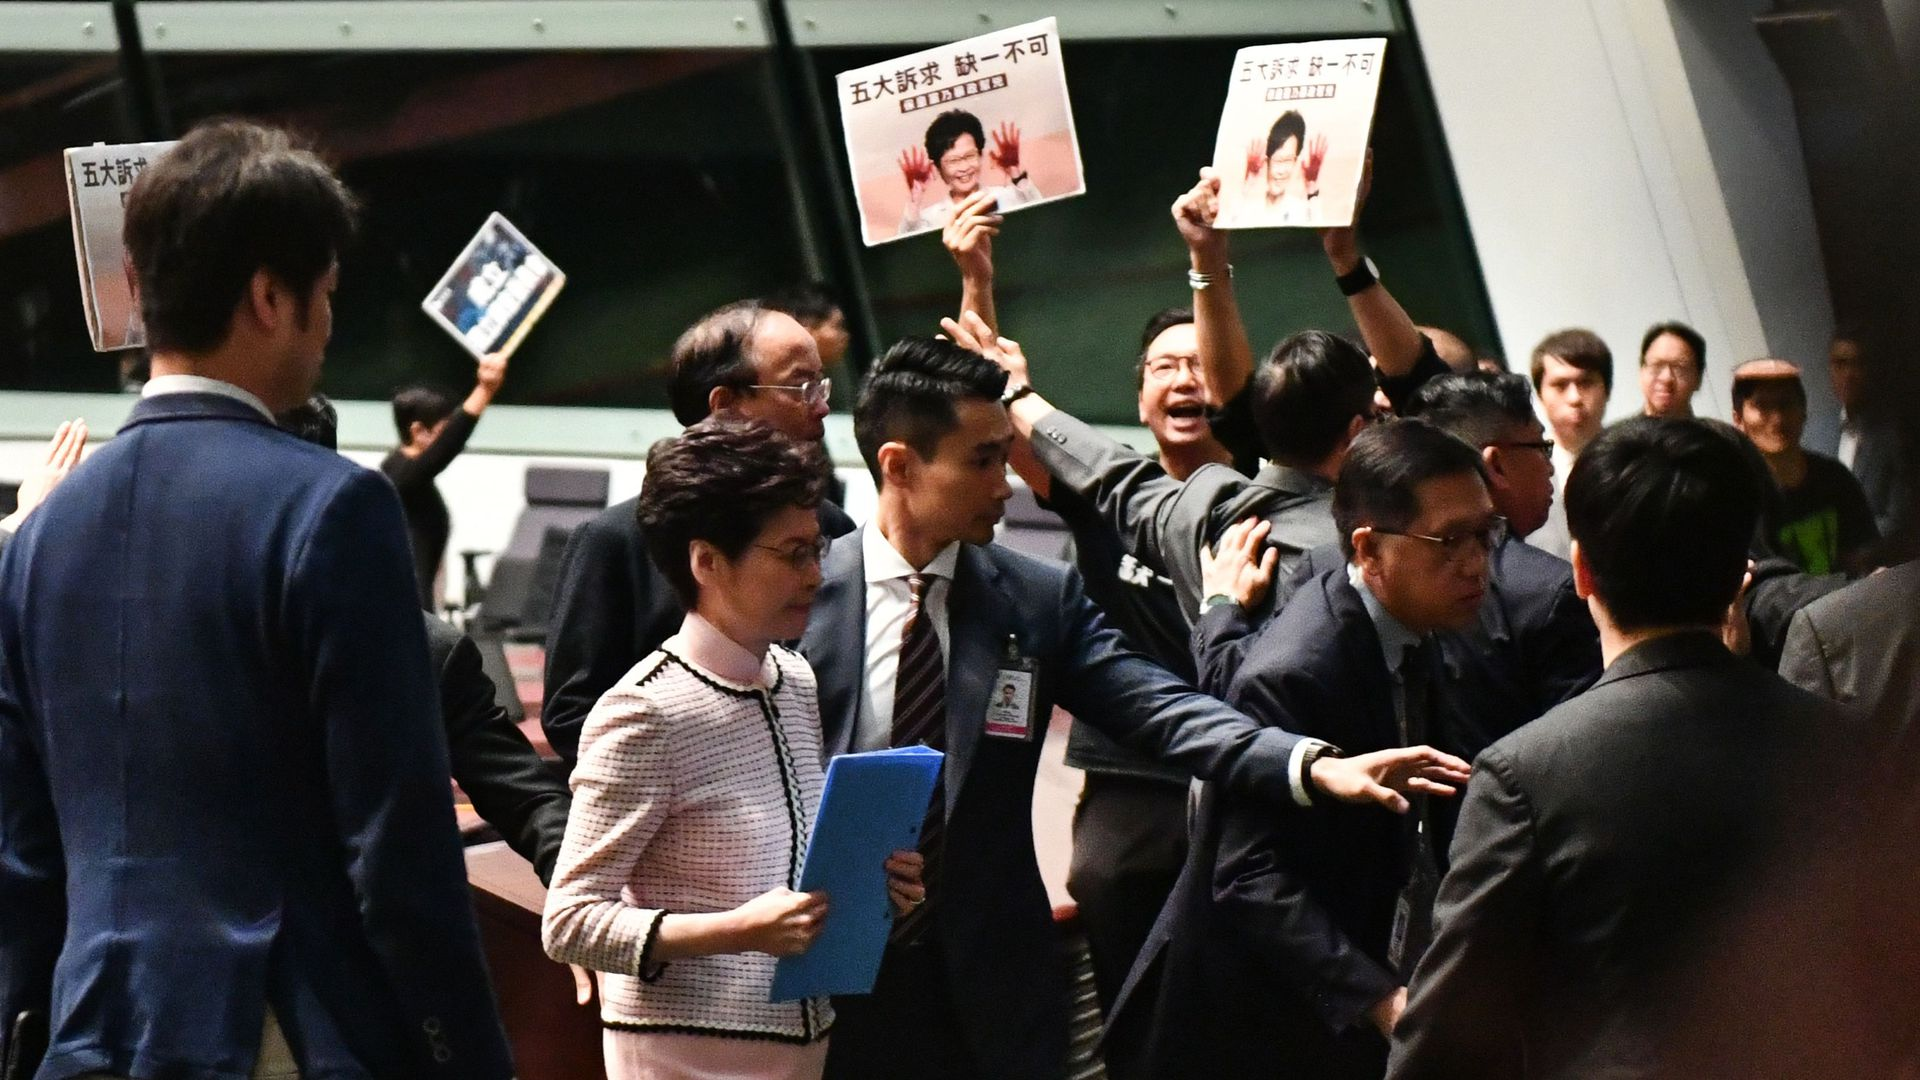 Hong Kong's Chief Executive Carrie Lam  leaves the chamber after trying to give her annual policy address